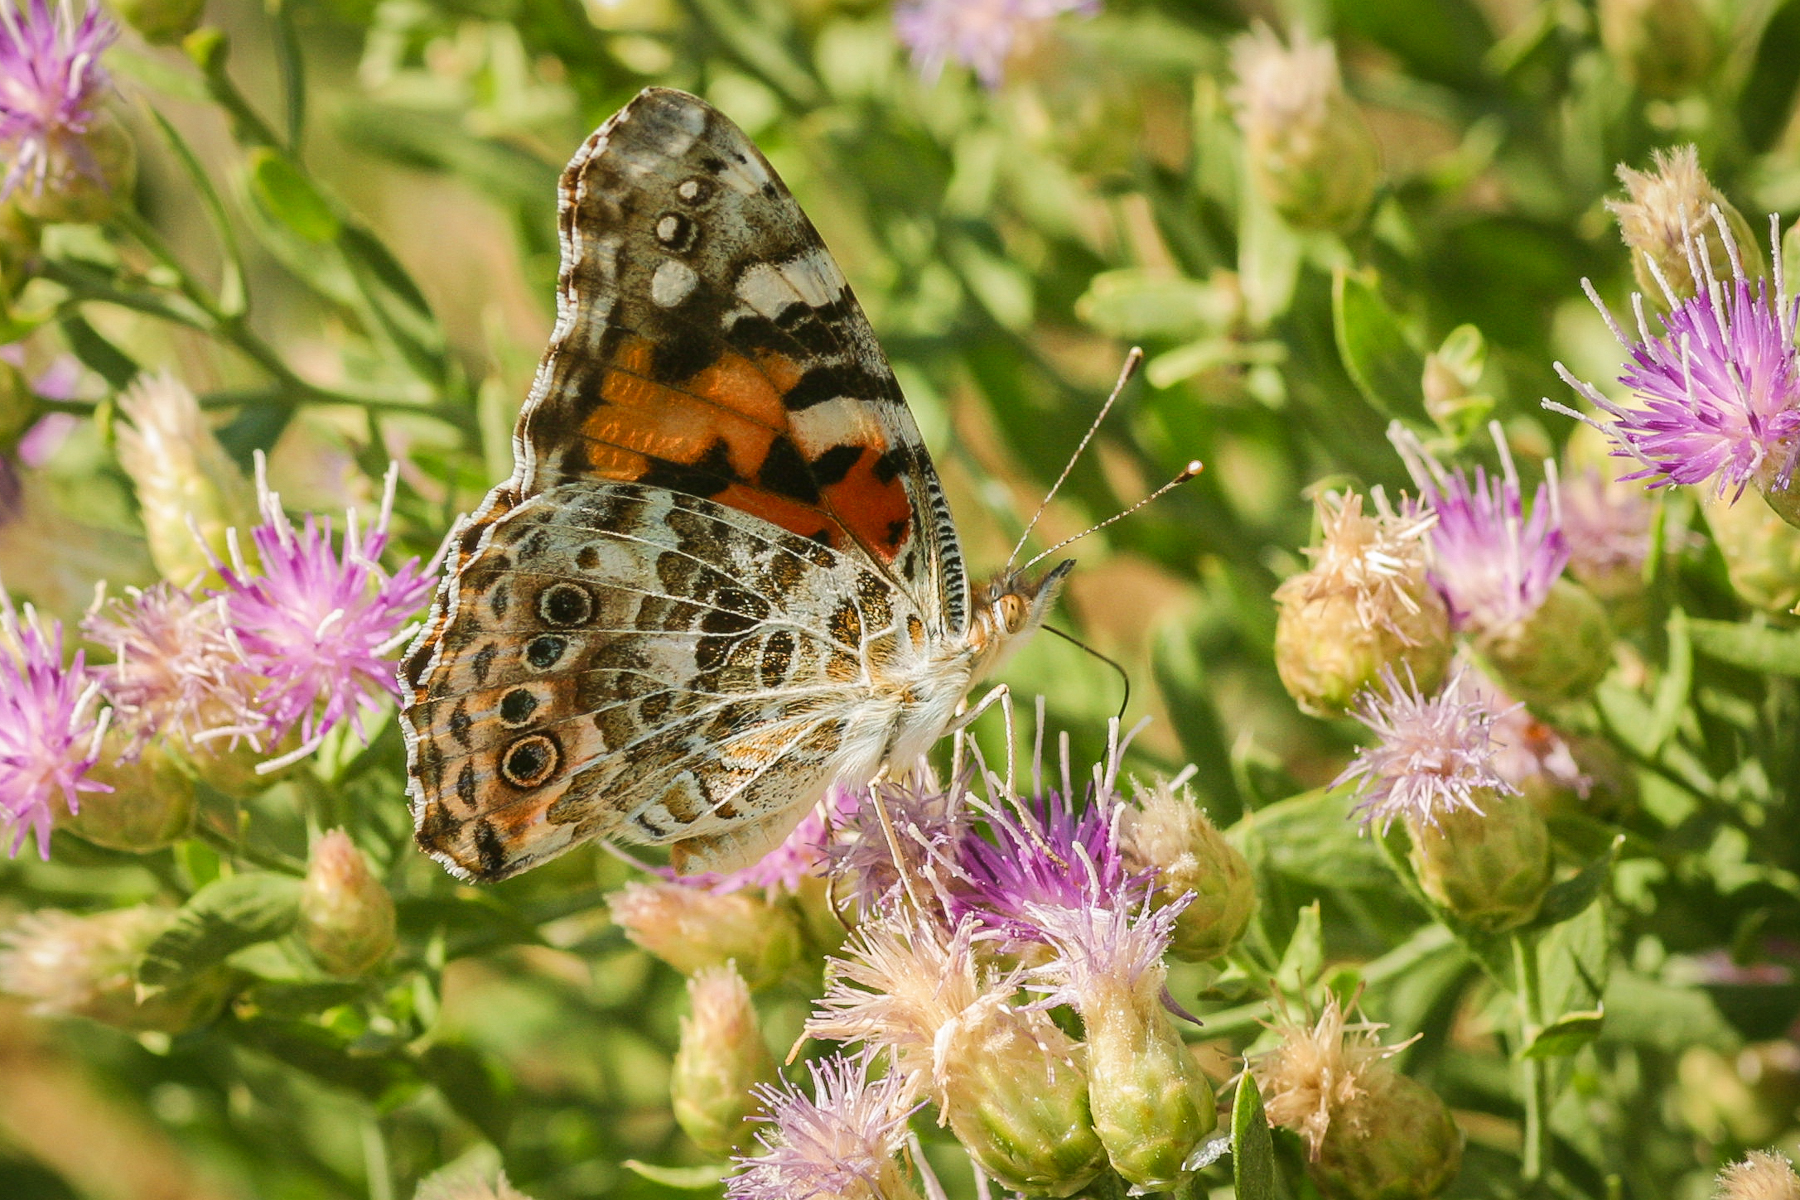 A Painted Lady dips her proboscis into a flower. Photo: Sue Anderson